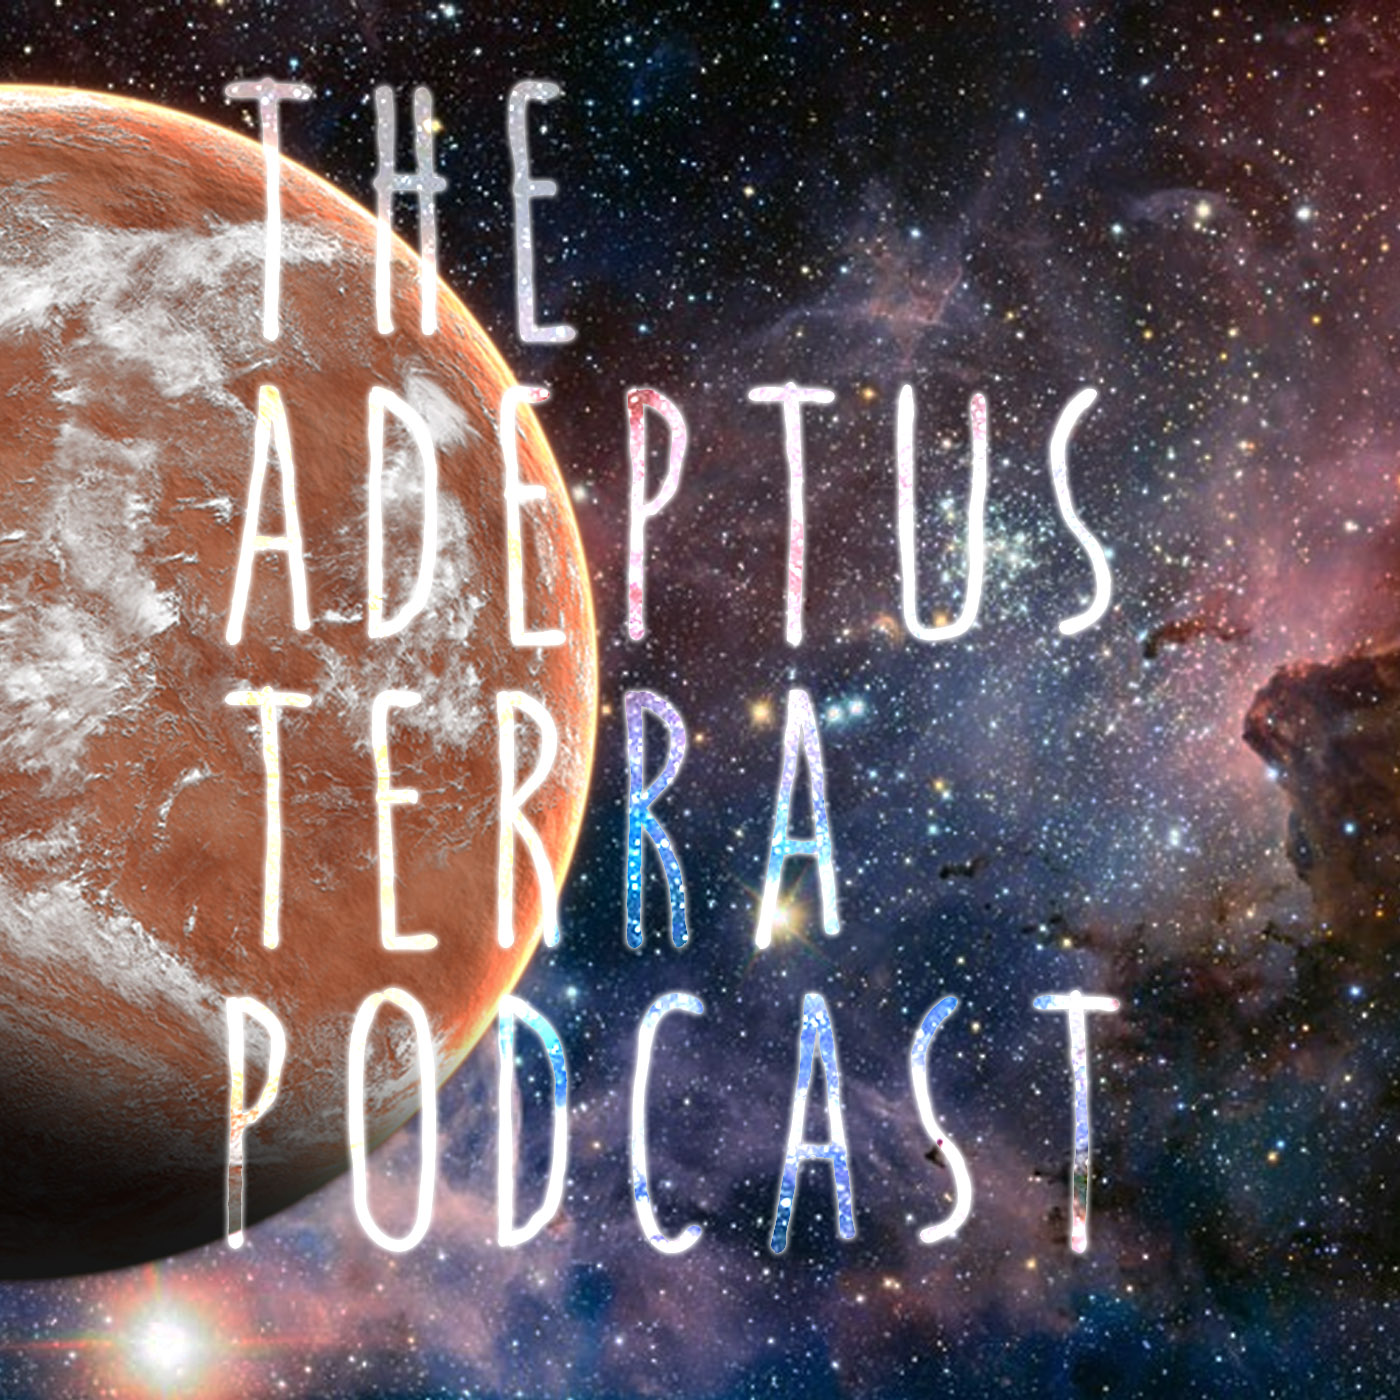 The Adeptus Terra Podcast